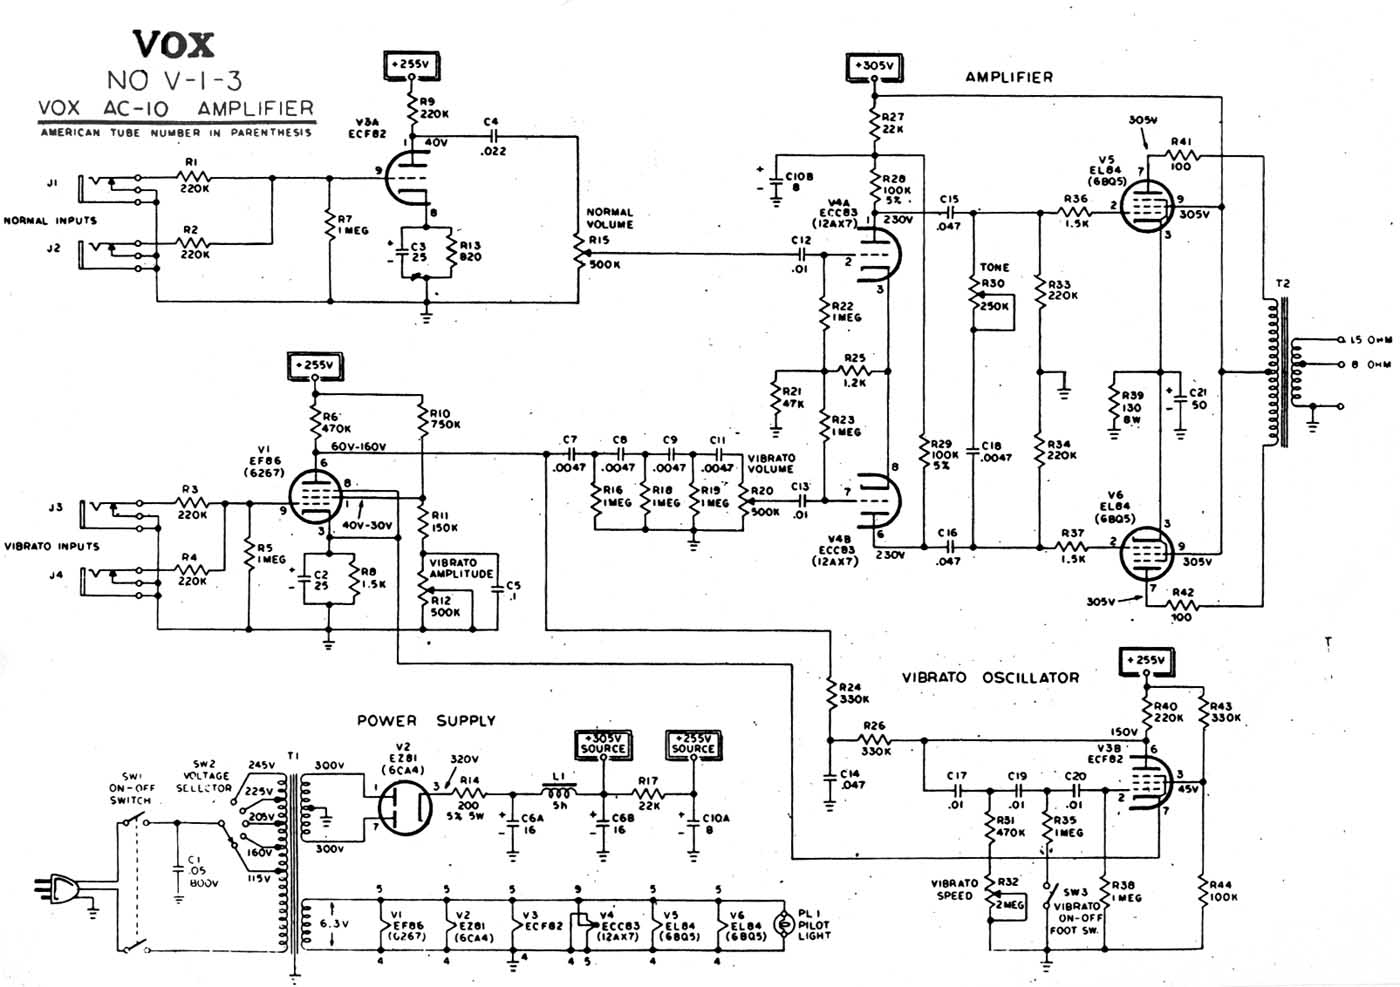 ac10 1960 alternative circuit diagram